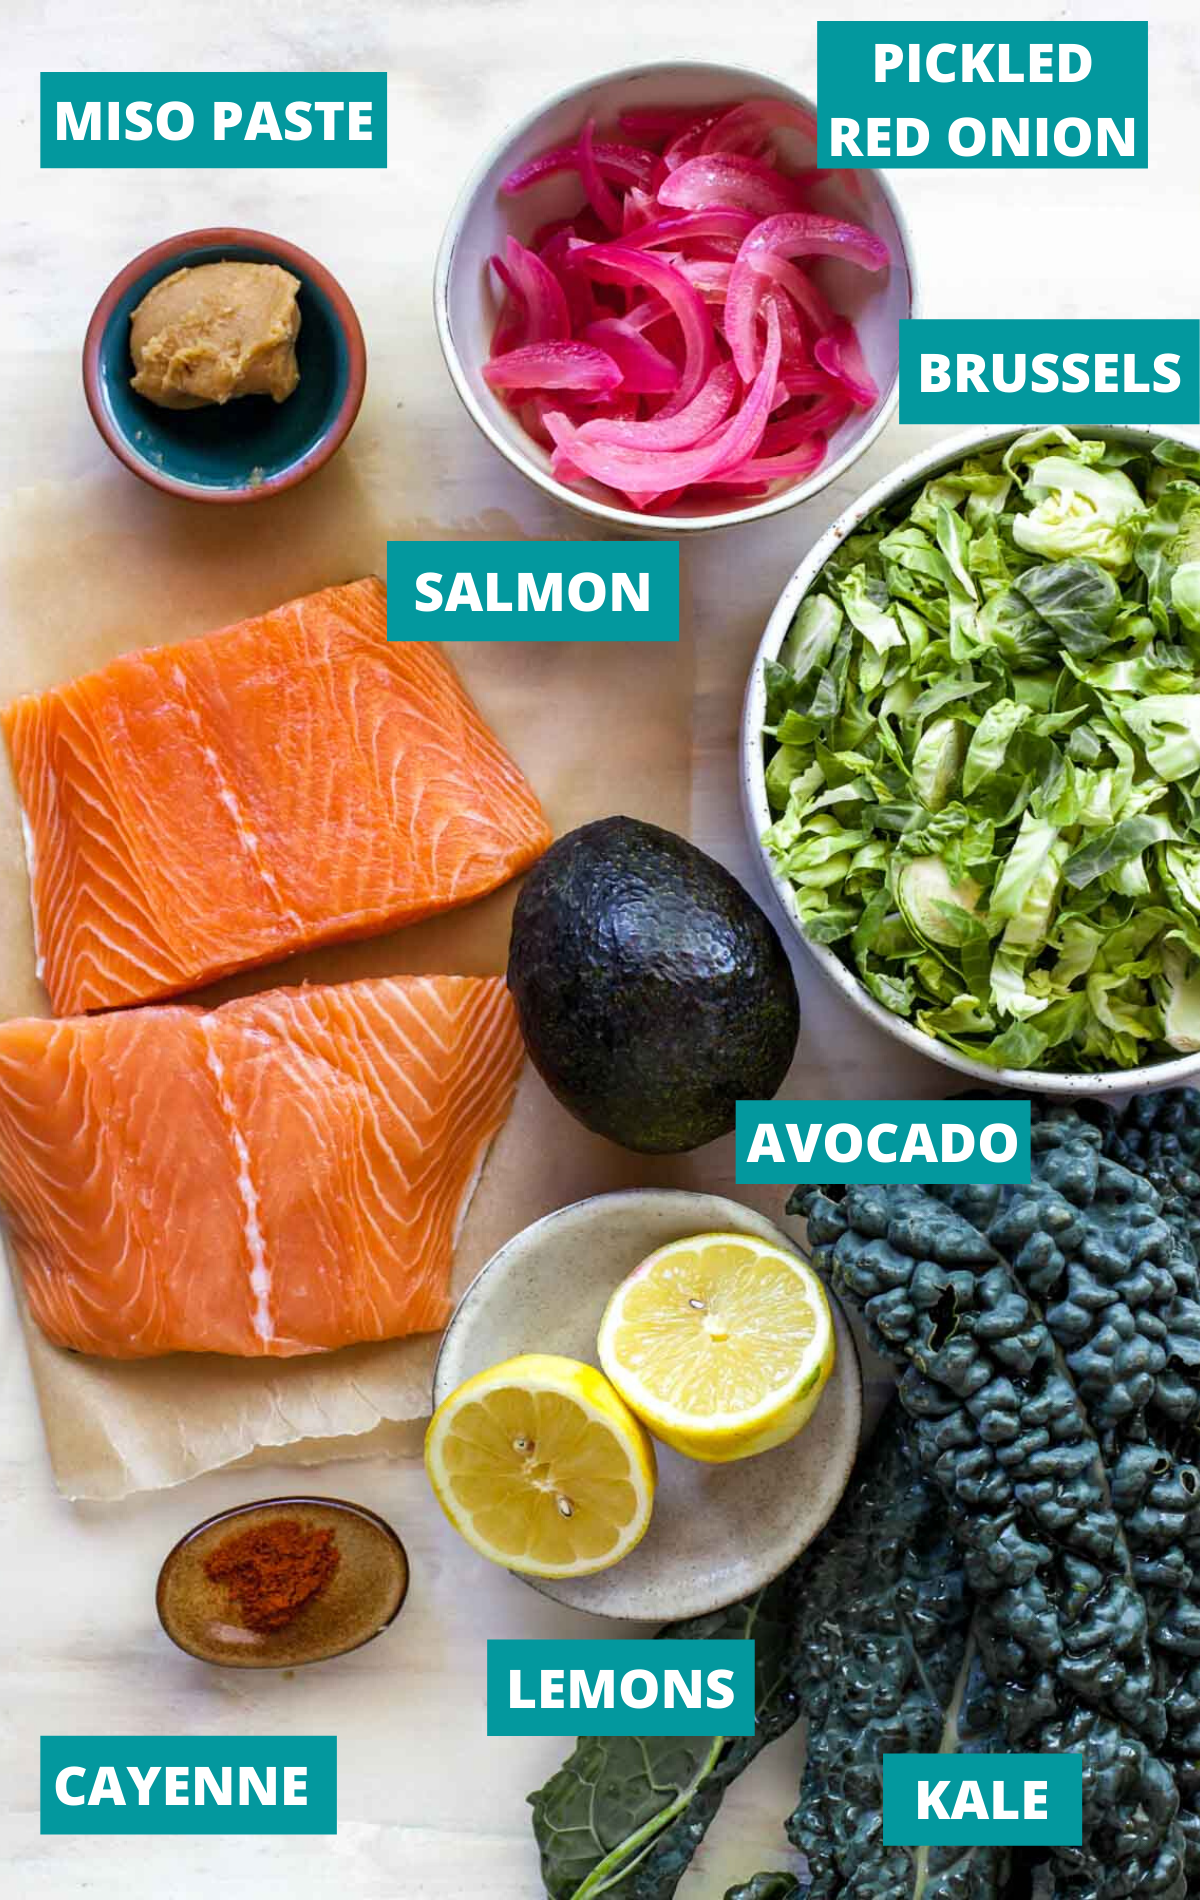 Salmon fillets, kale, brussels, and salad dressing ingredients in separate bowls with ingredient labels